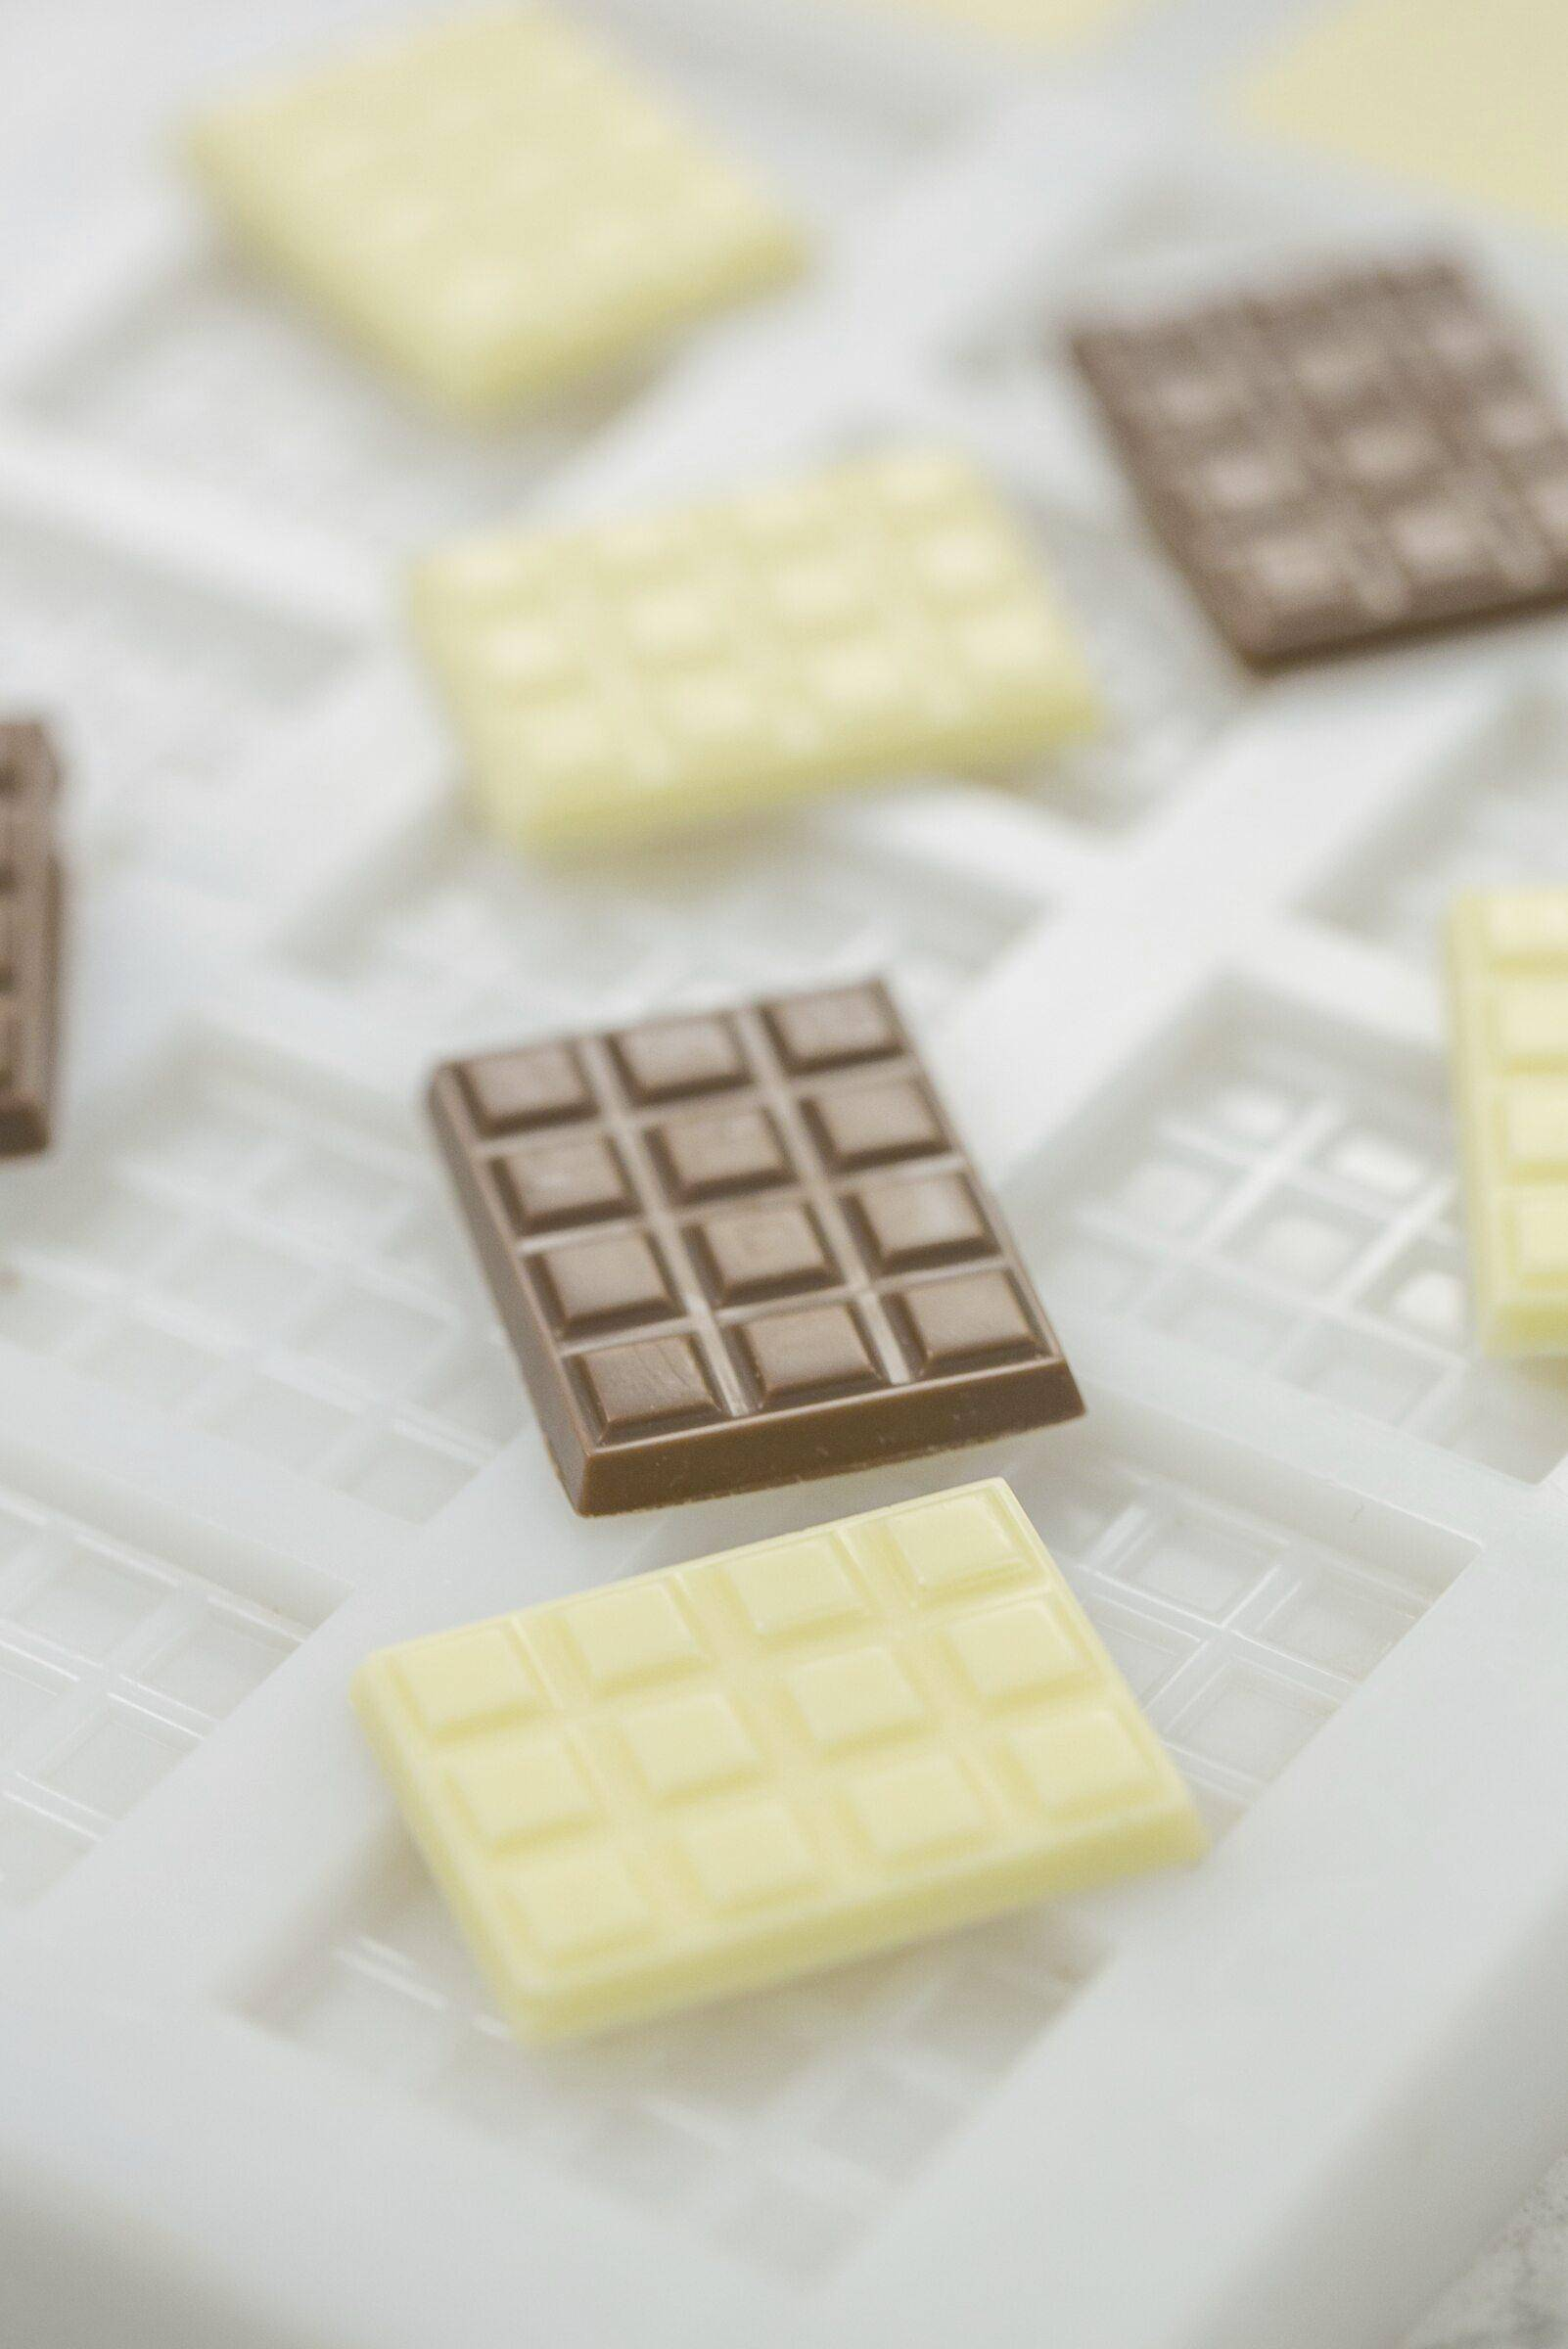 Barry Callebaut to open its first Chocolate Academy in the United States in September 2008